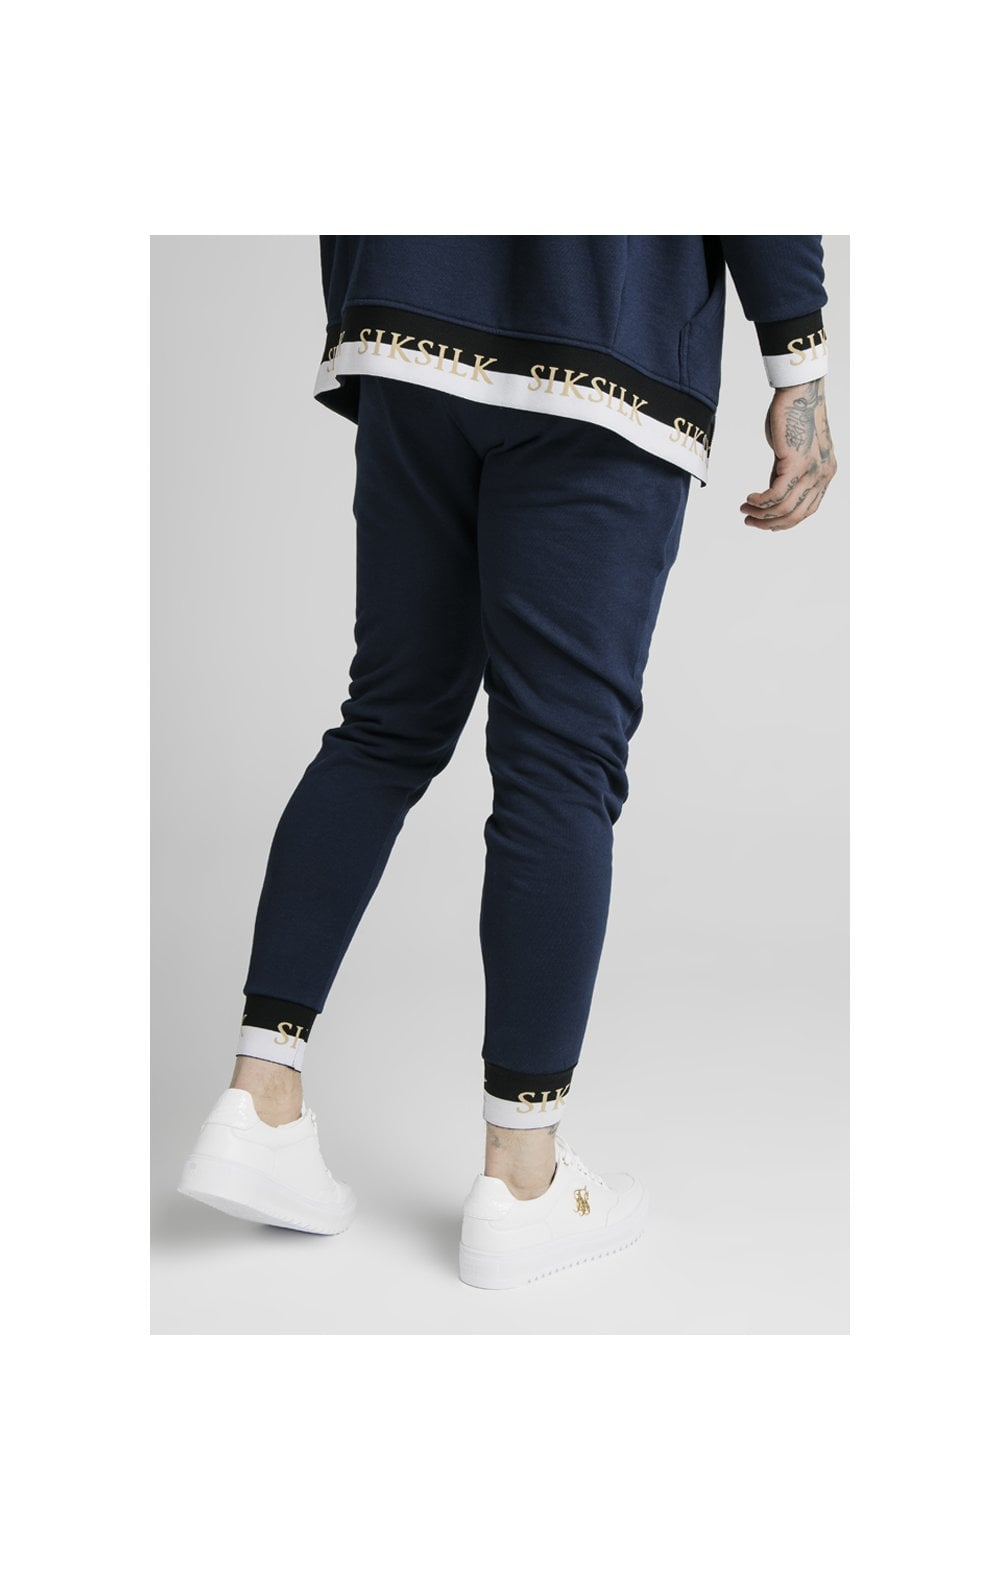 SikSilk Deluxe Fitted Jogger - Navy (5)